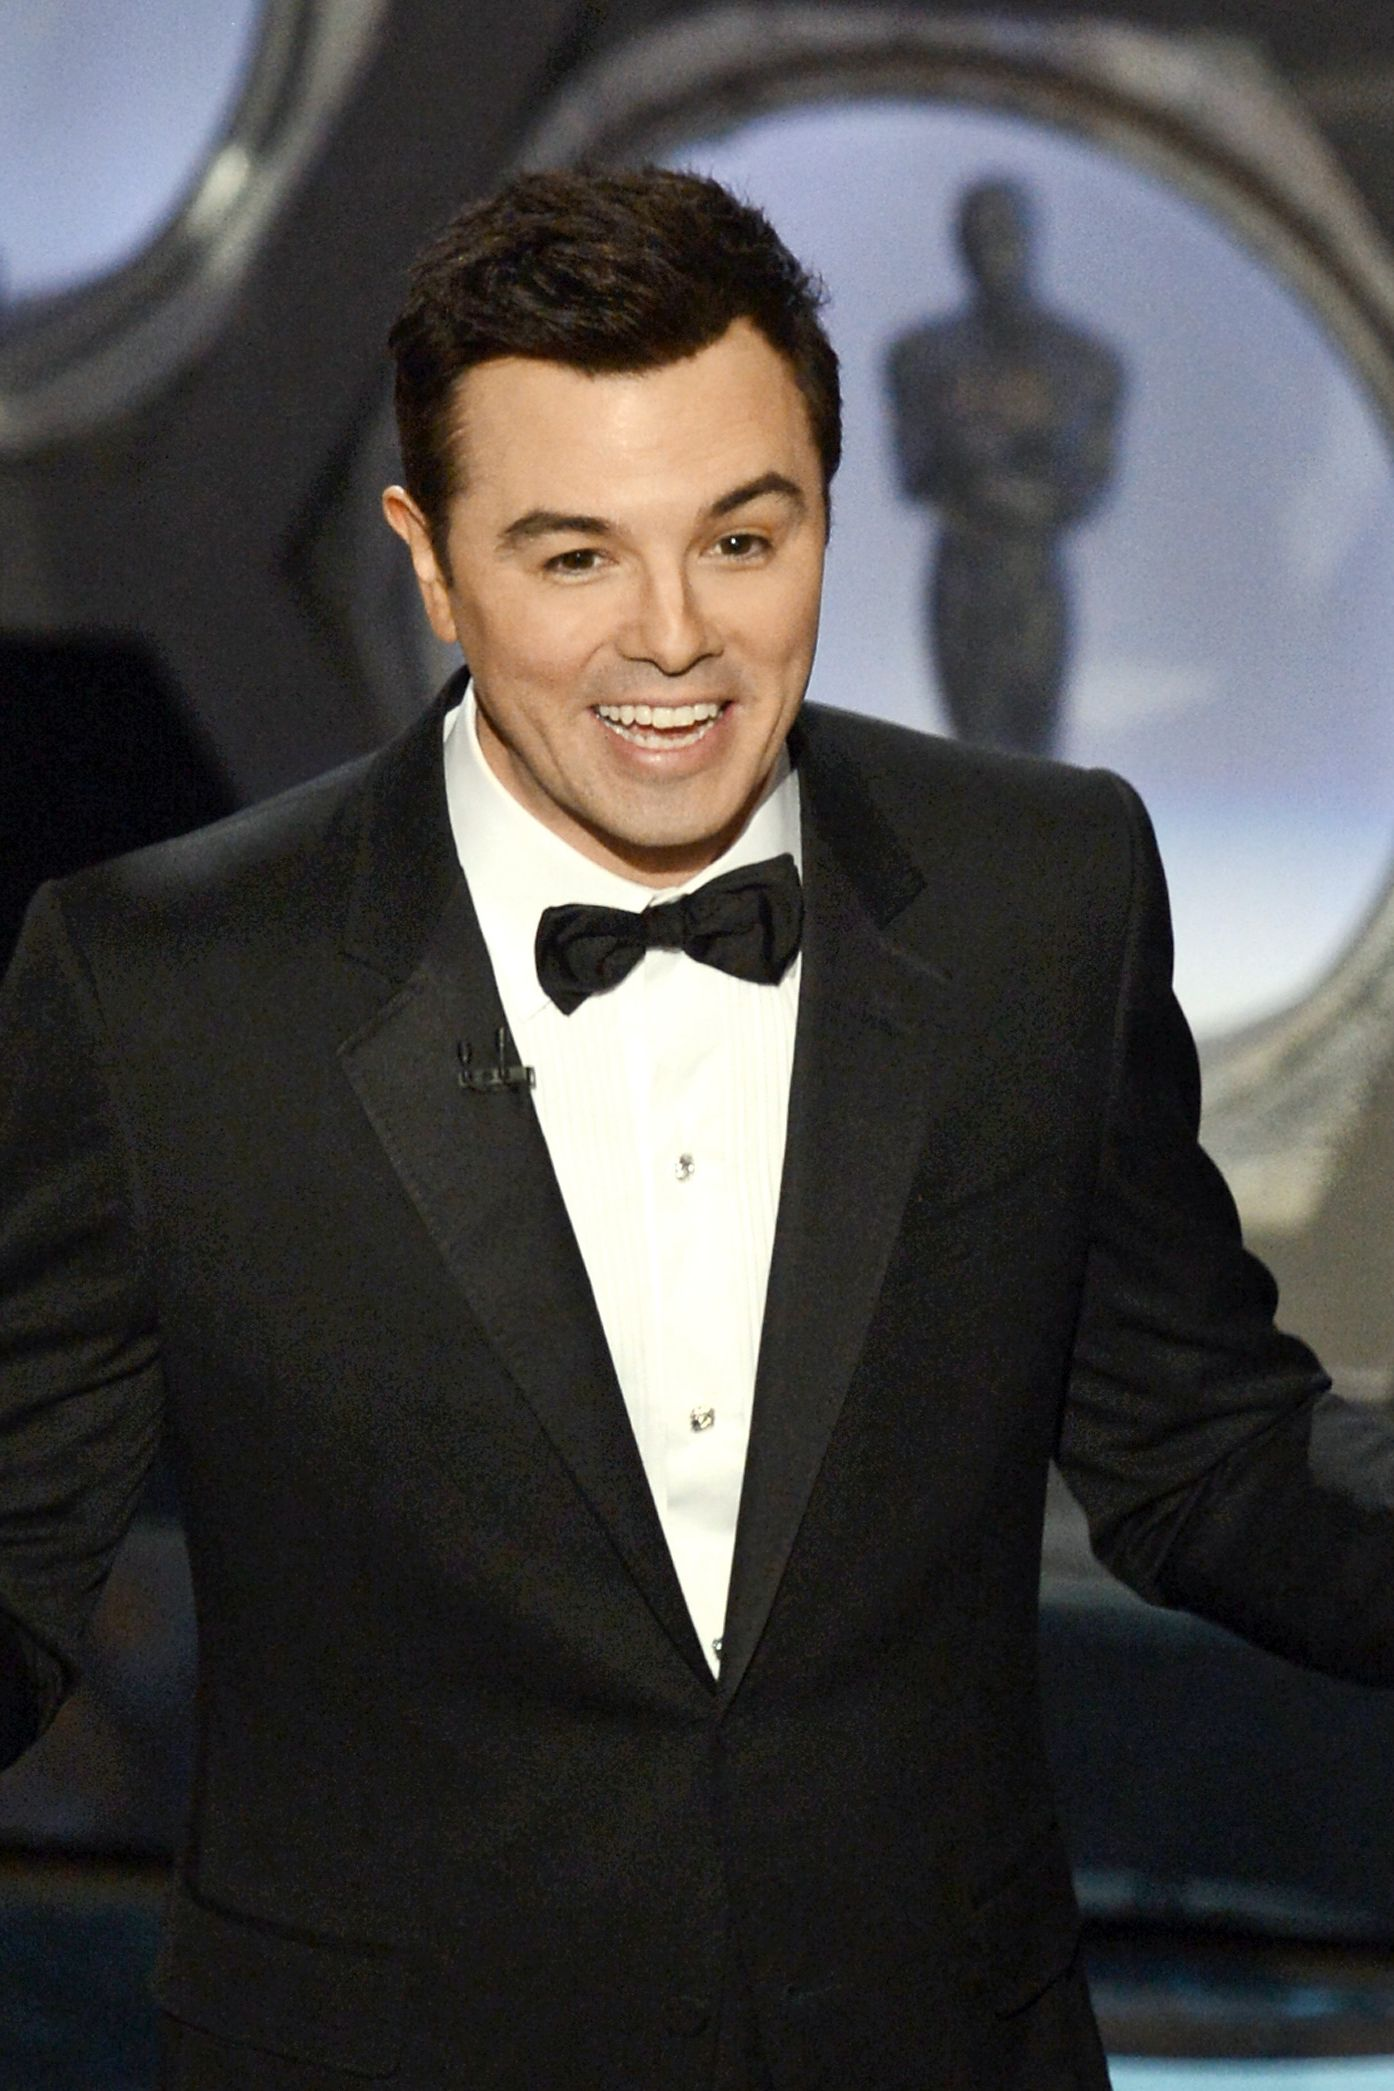 Oscars Most Controversial Hosts Seth Macfarlane 2013Inappropriate Singing